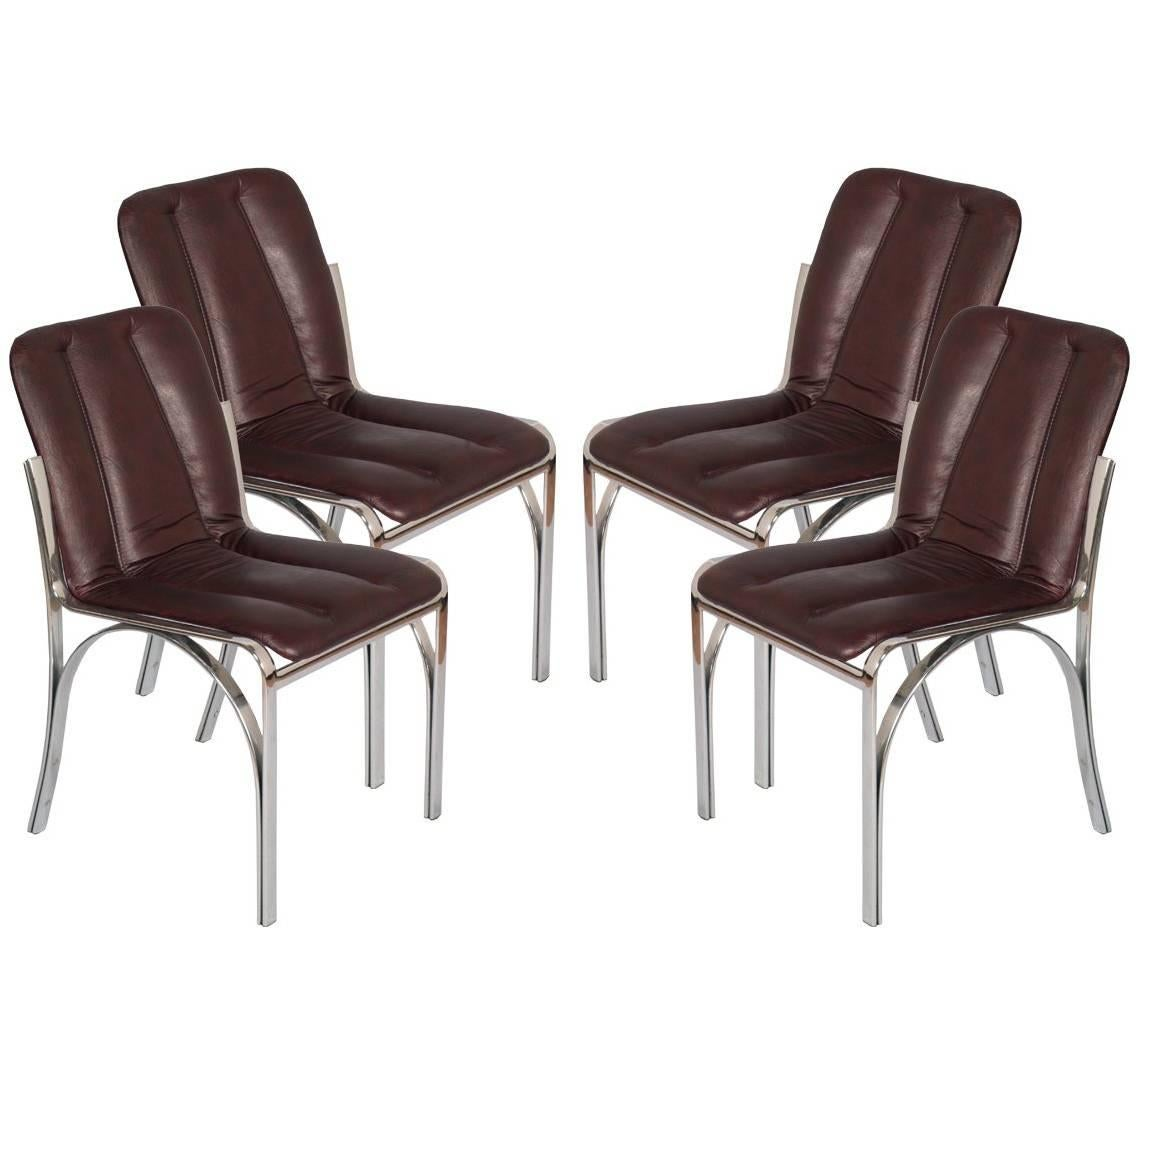 Italian 1970s Chairs Chromed Steel and Soft Leather  Gastone Rinaldi Manner